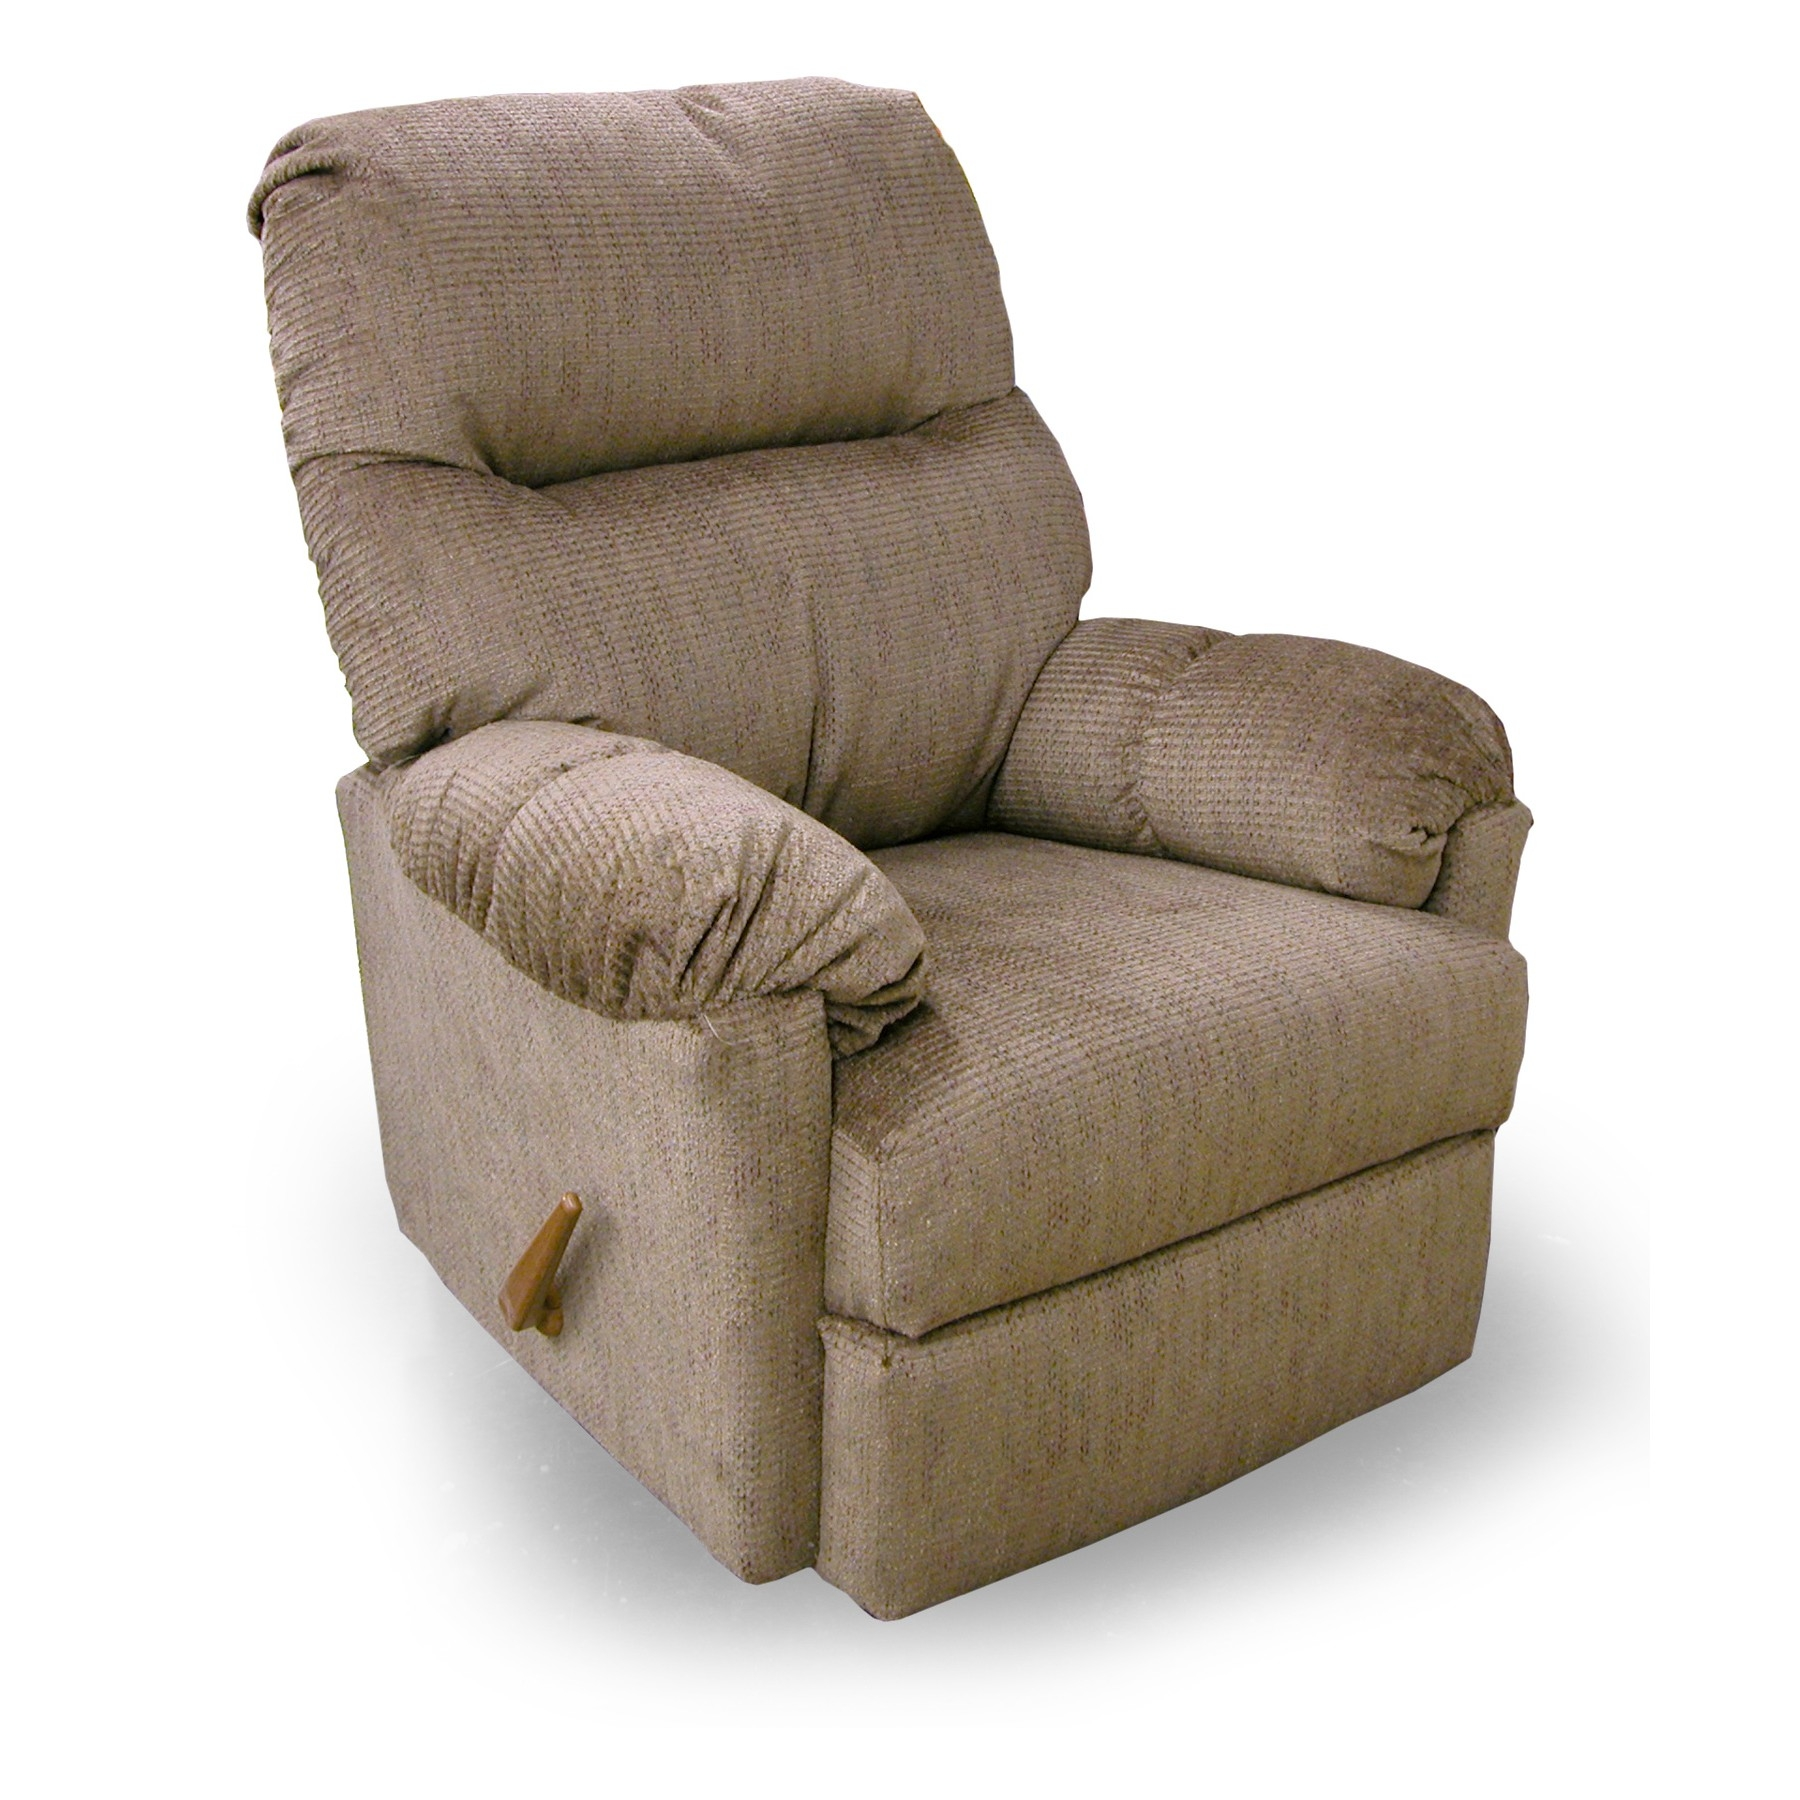 Charmant Reclining Rocking Chair Nursery